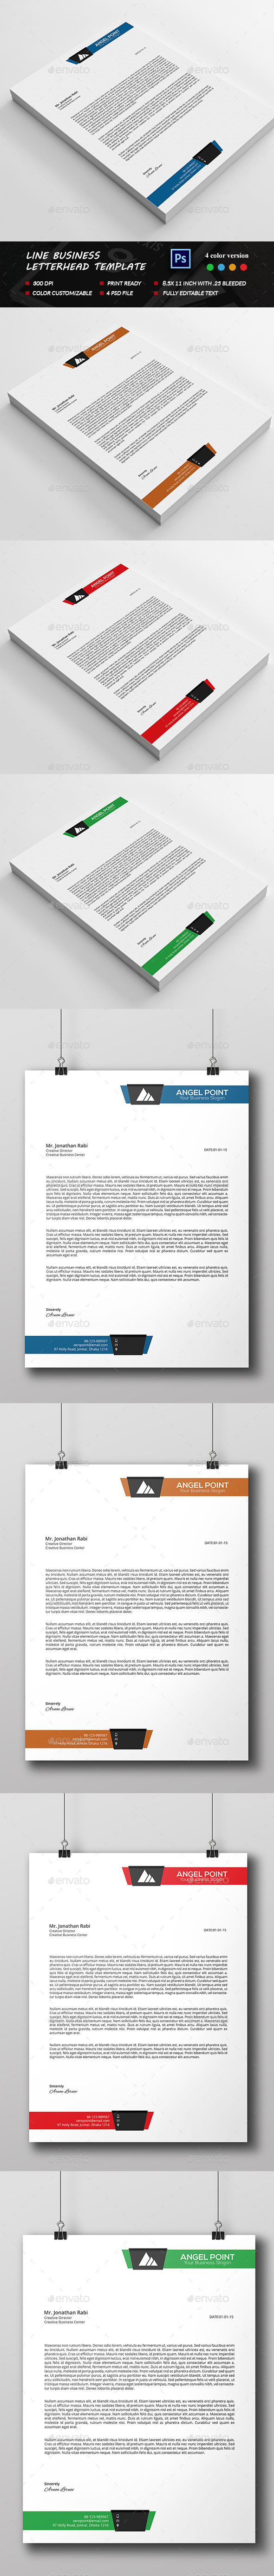 Letterhead Example ] | Letterhead Examples, Letterhead Examples With ...